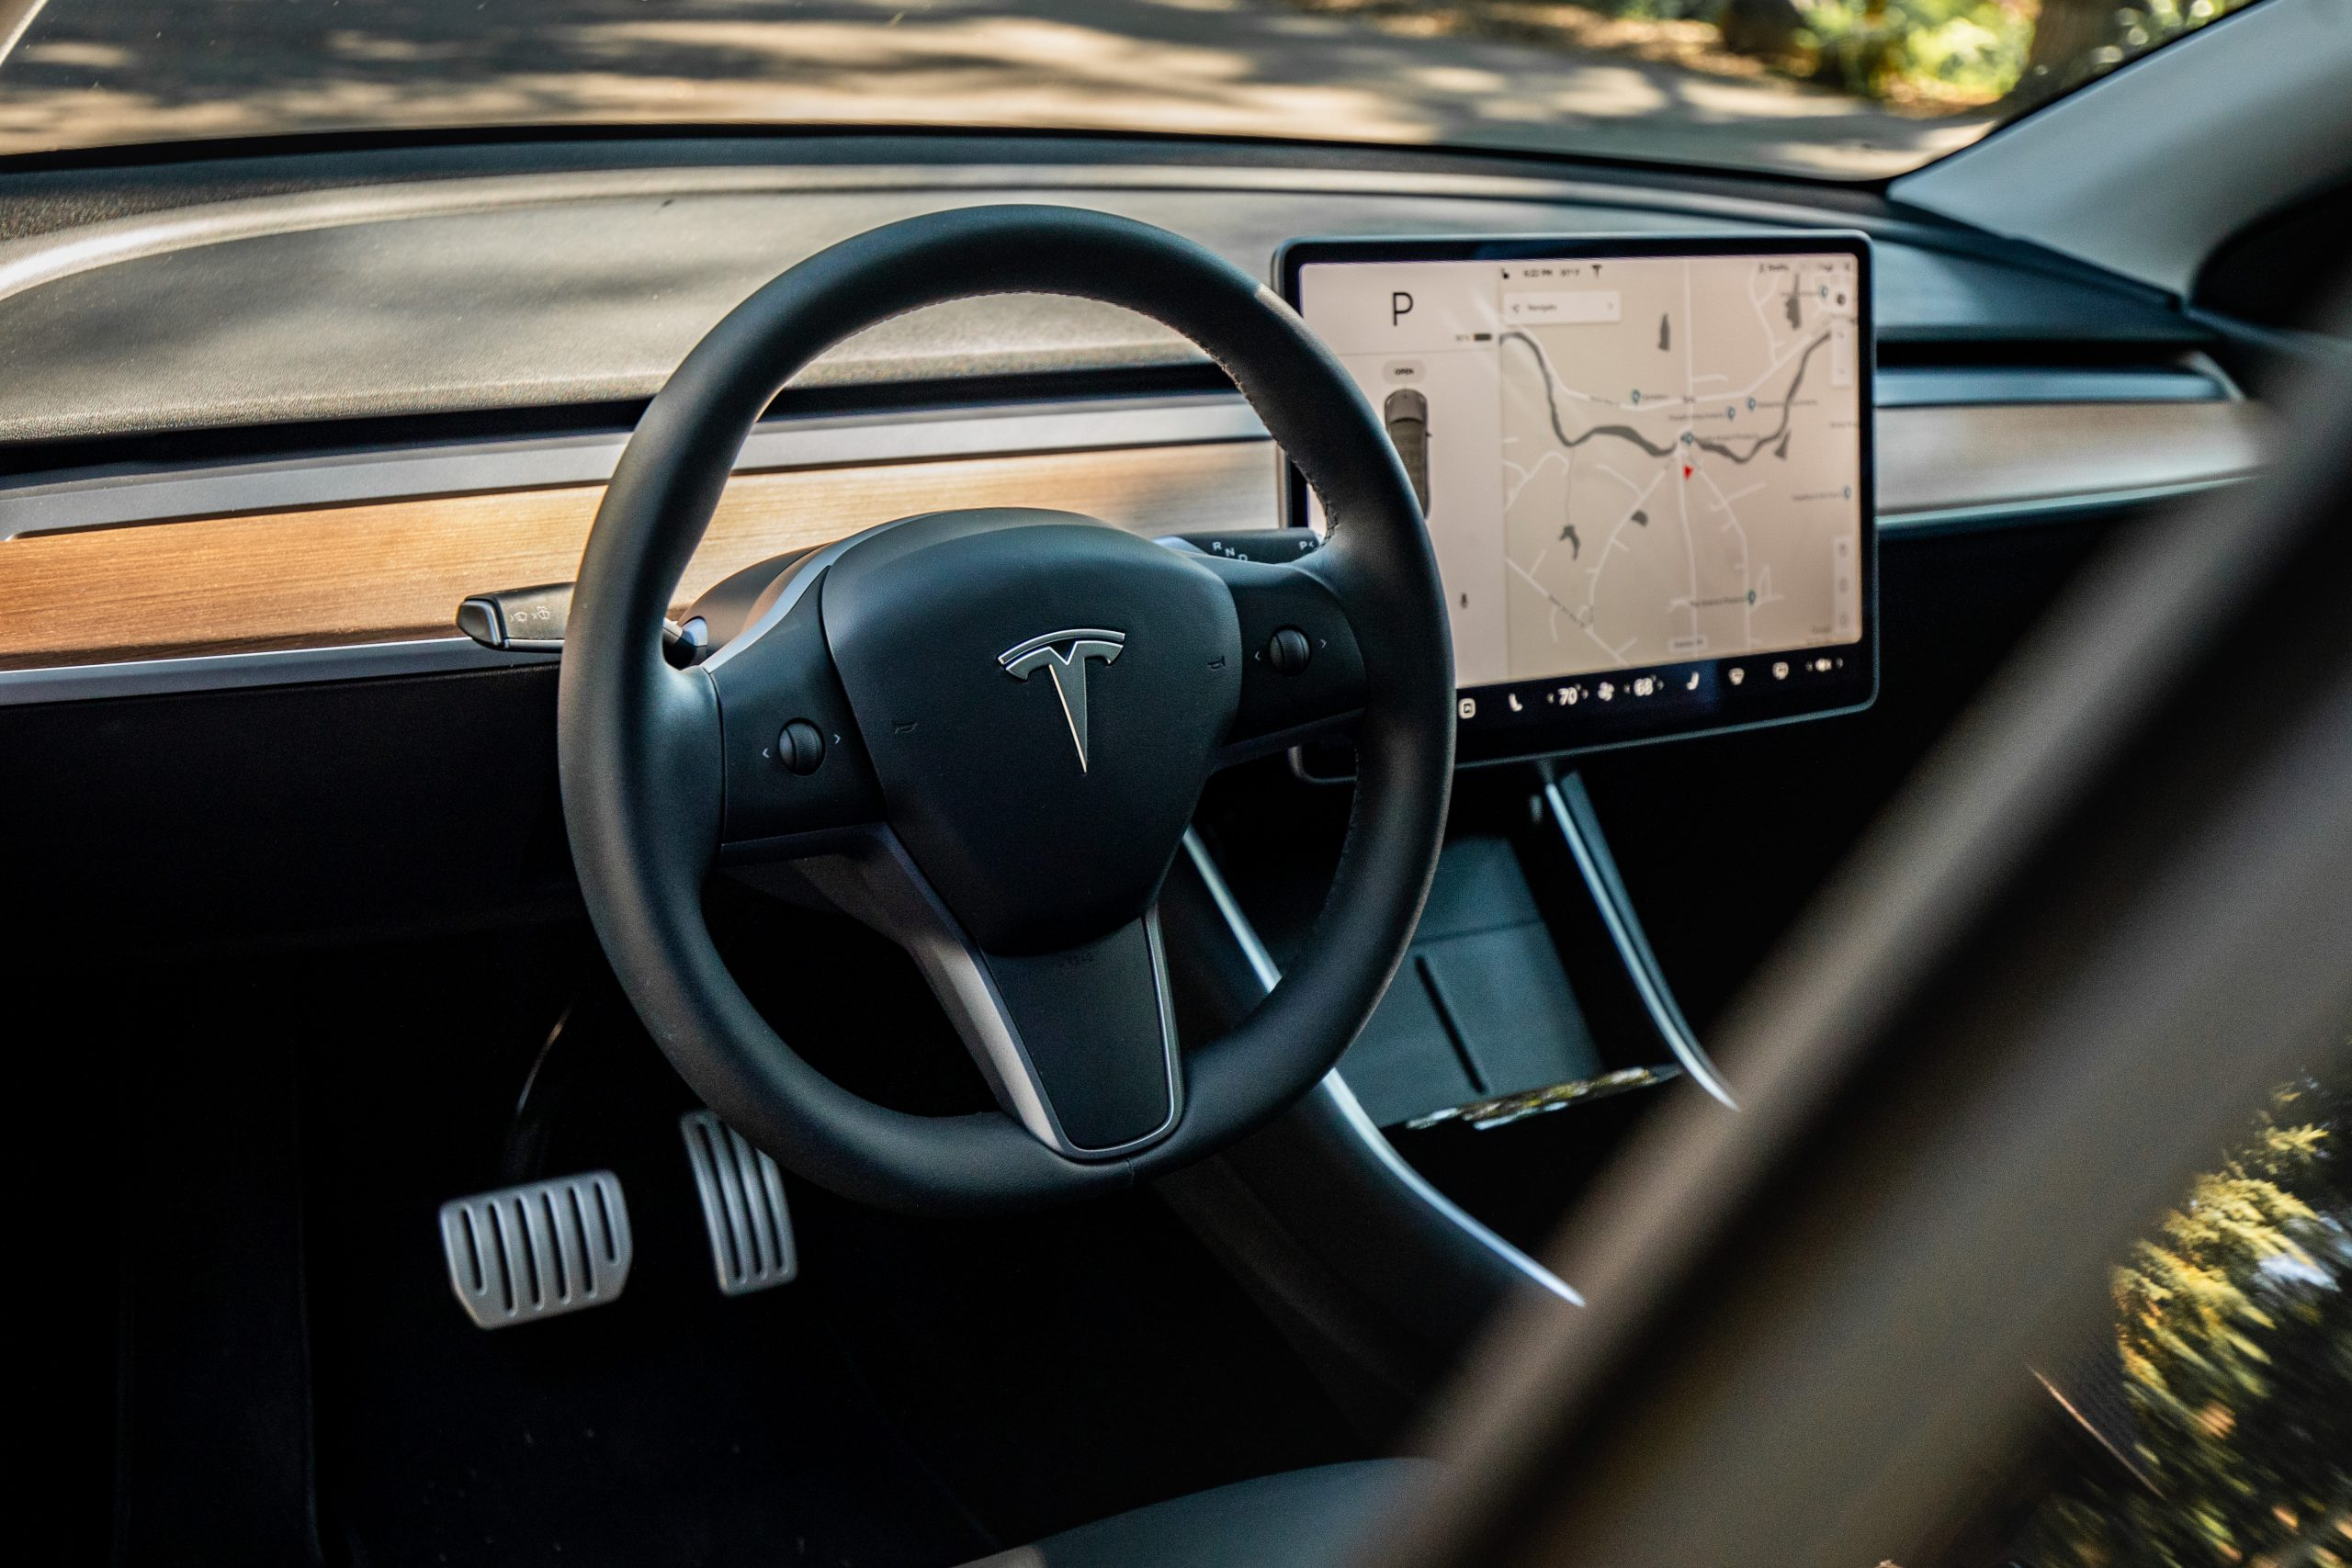 Tesla Model Y interior wheel and infotainment screen detail